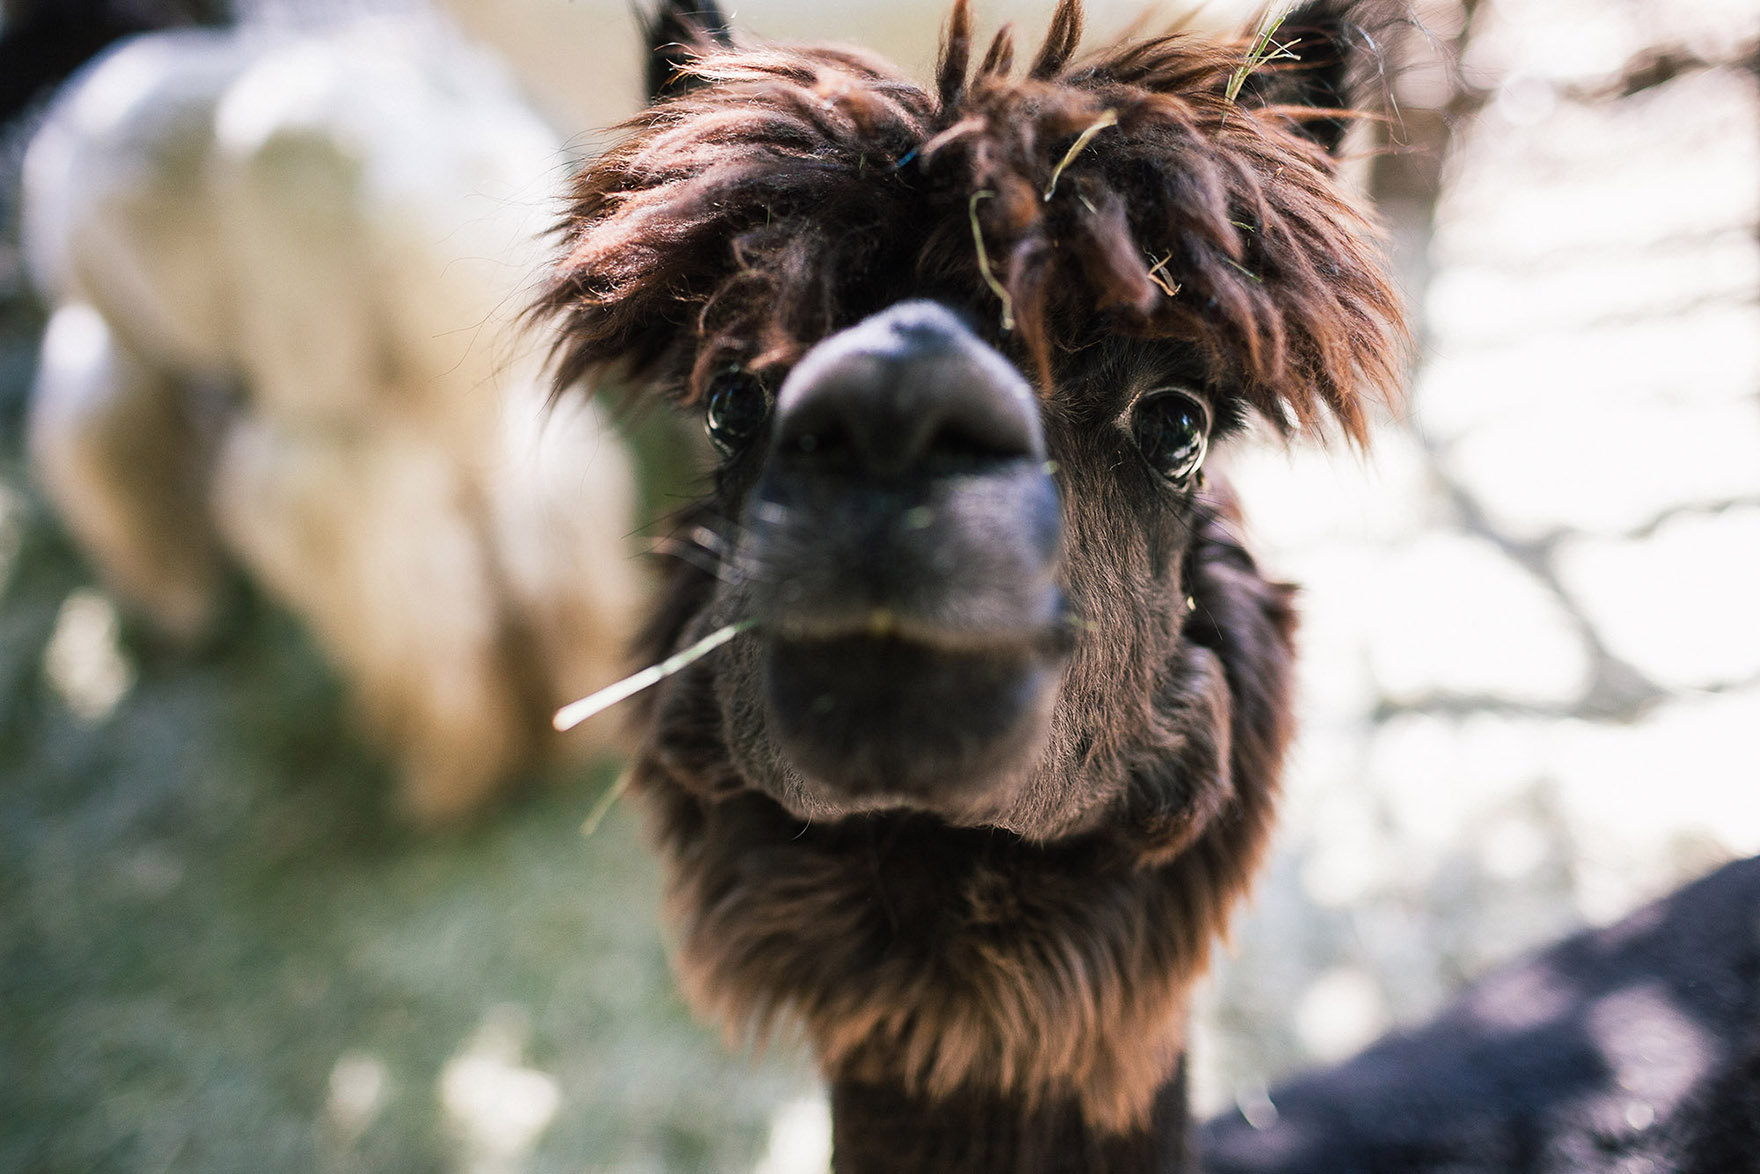 alpaca llama smiles for the camera fuzzy and furry at the old alpaca llama farm now owned by the steve wozniak apple family redwood ridge estate wedding venue the perfect santa cruz redwood wedding venue los gatos wedding venue petting zoo farm